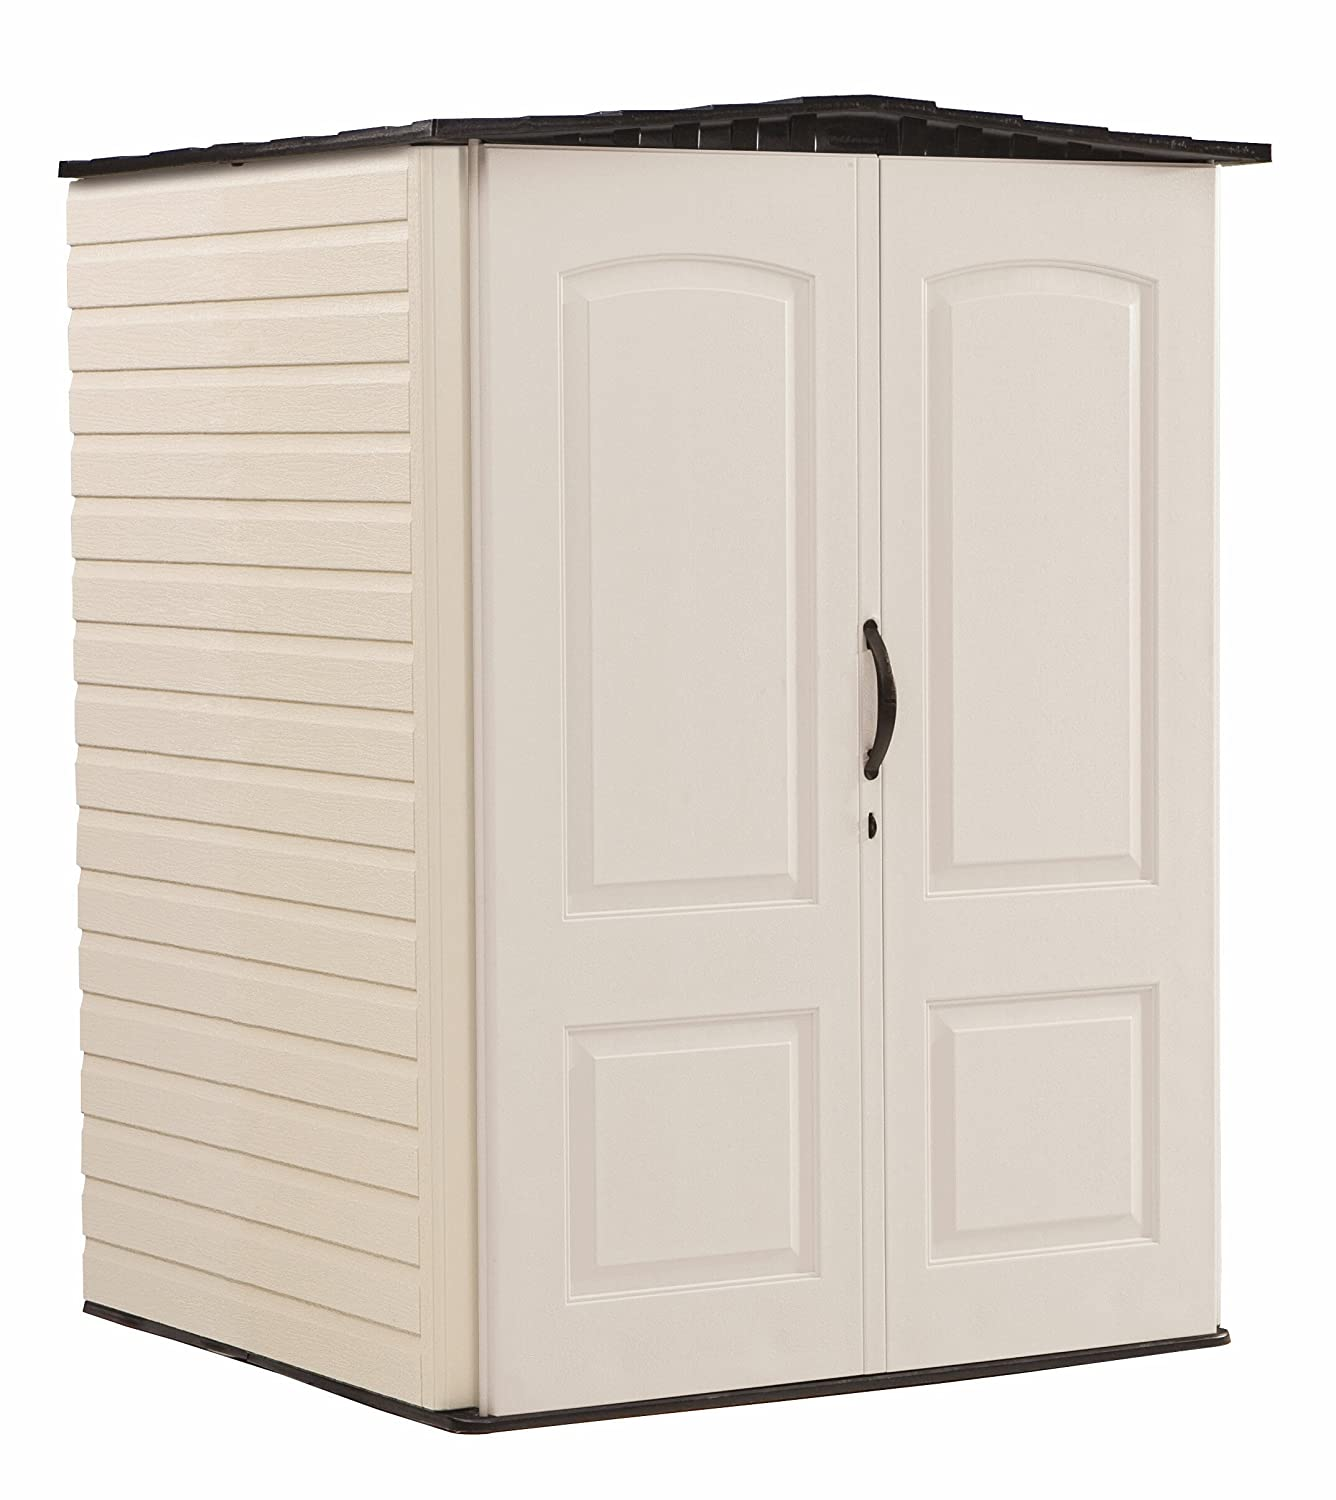 Amazon.com : Rubbermaid Roughneck Plastic Medium Vertical Storage Shed,  106 Cubic Feet, FG5L2000SDONX : Patio, Lawn U0026 Garden